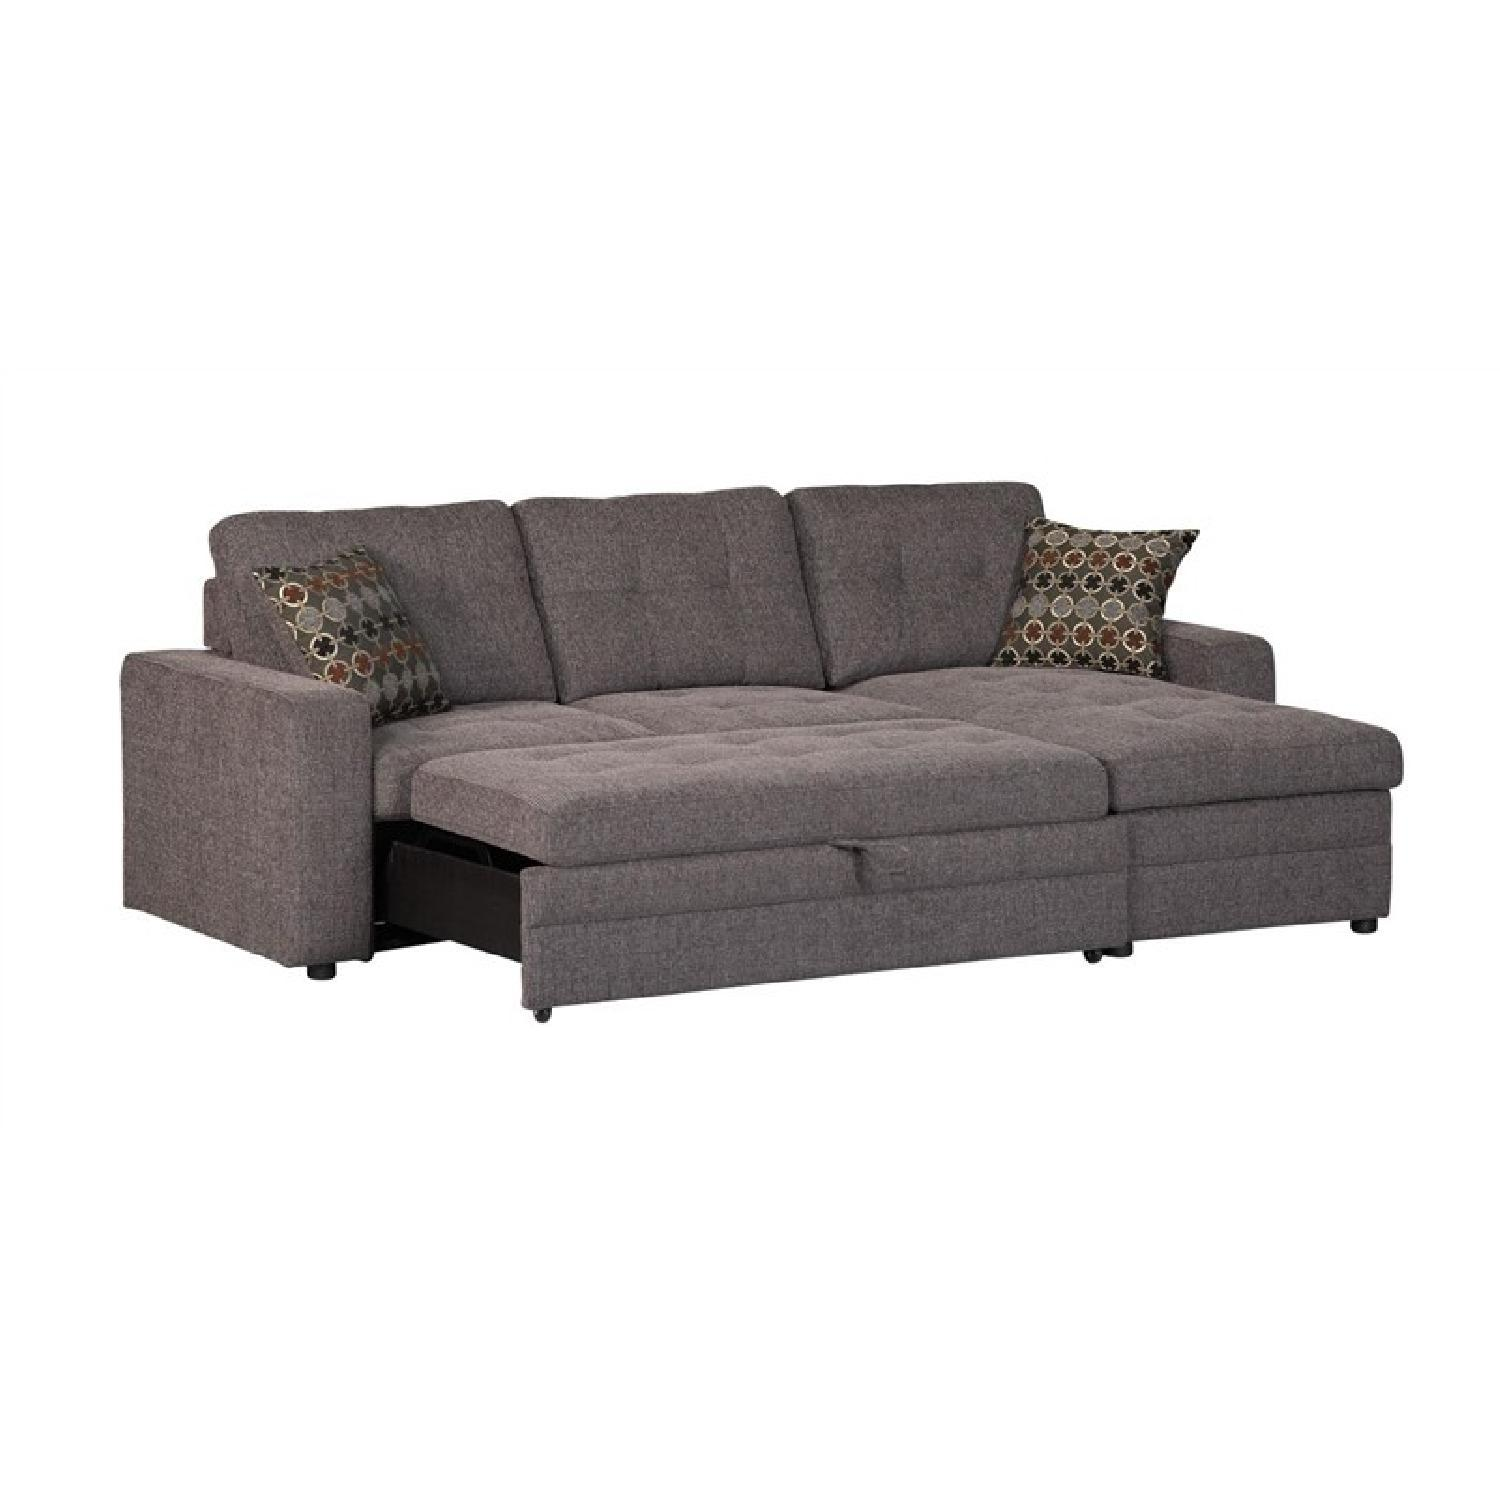 Modern Convertible Sectional Sleeper Sofa w/ Storage Chaise